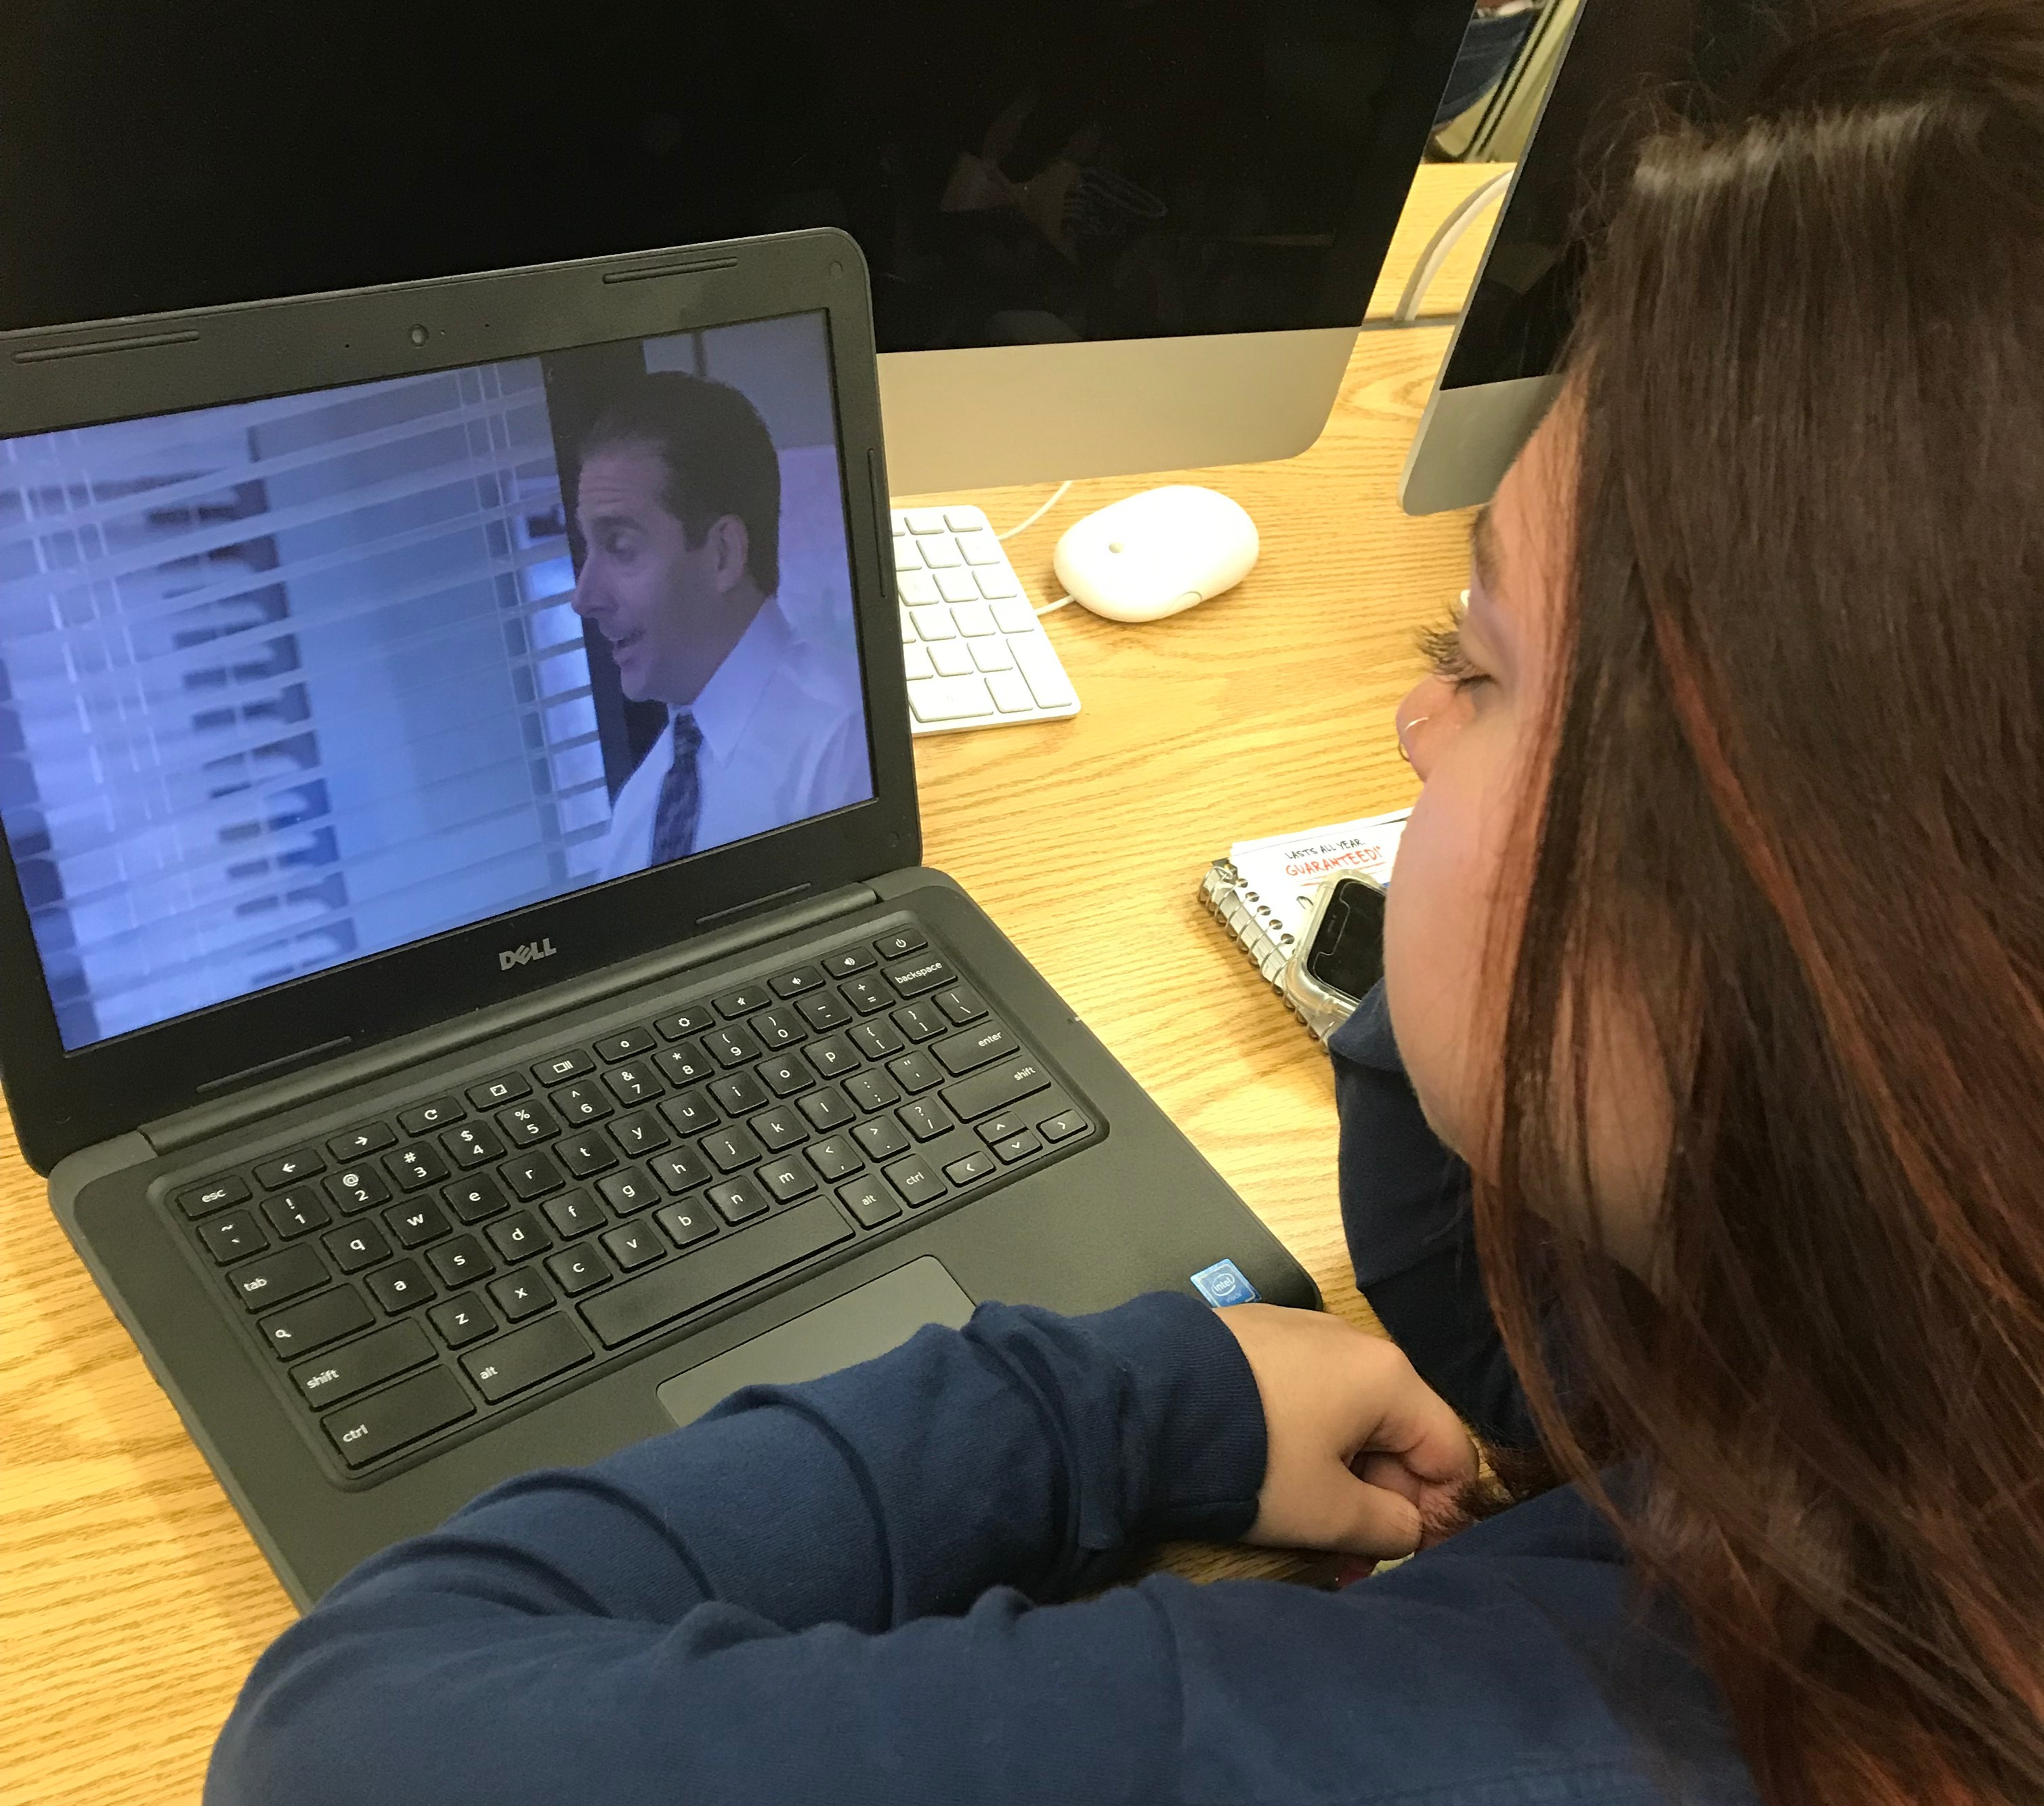 NHS Students Share Their Thoughts on Netflix Programs | NHS